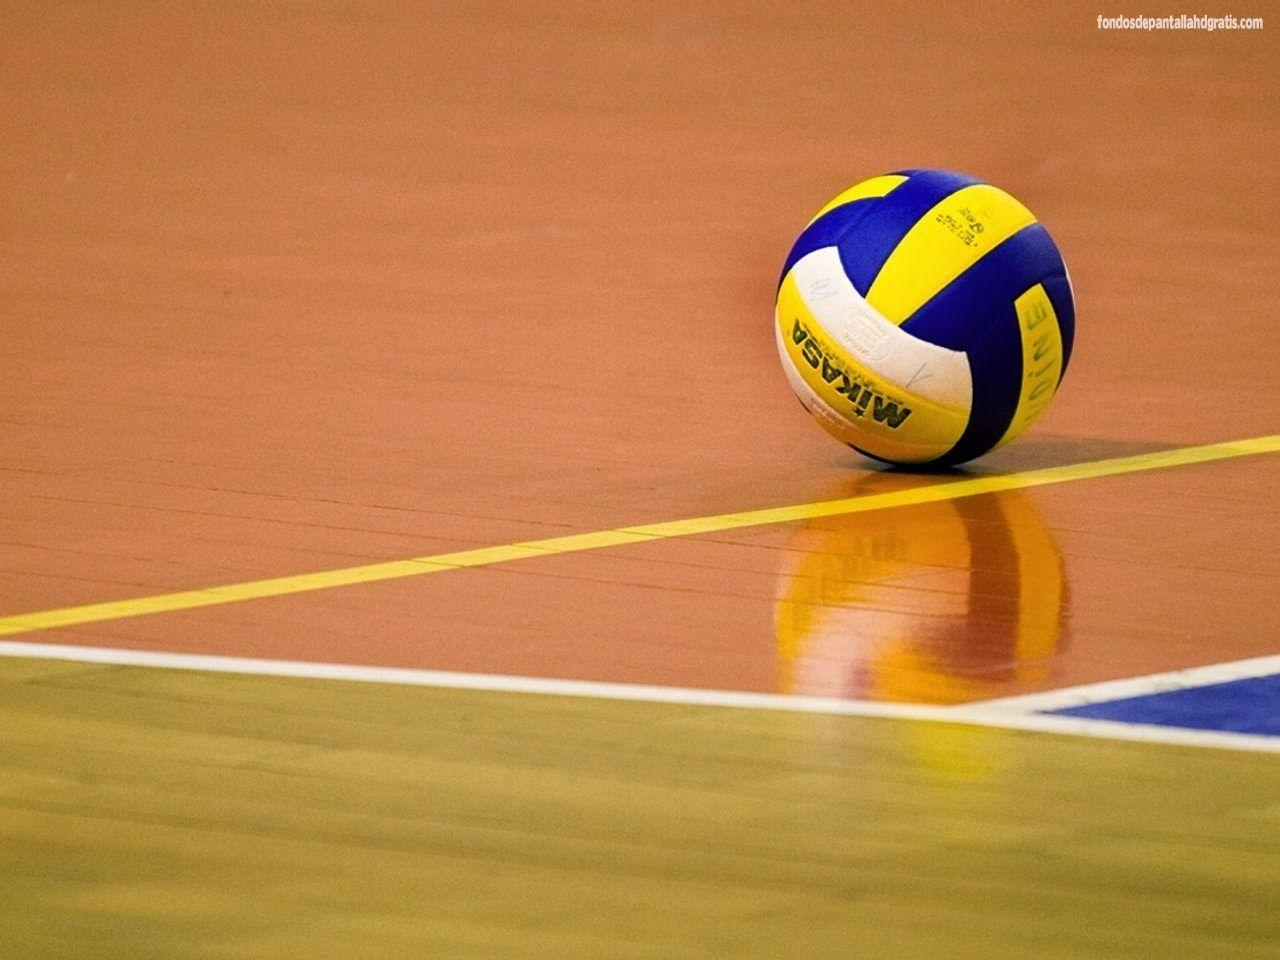 Volleyball Wallpapers and Background Images   stmednet 1280x960